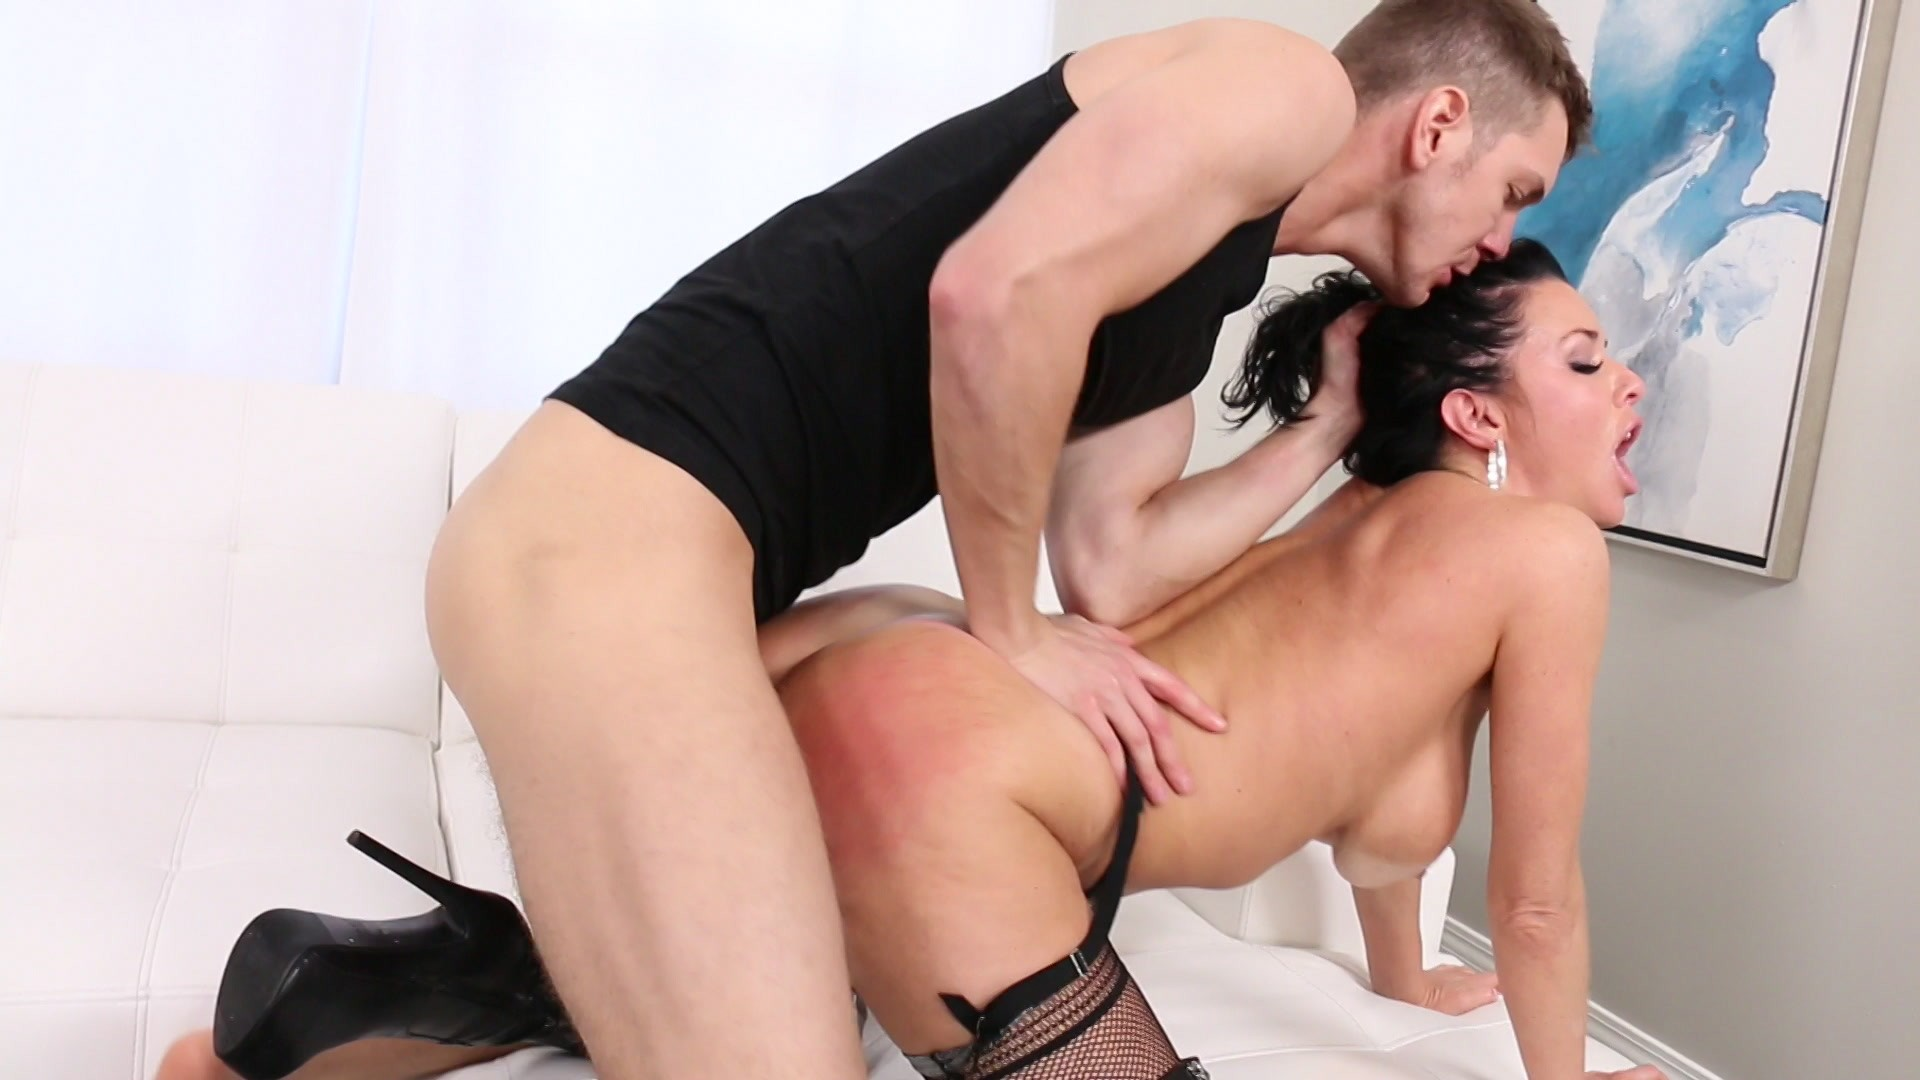 Scene with Veronica Avluv - image 11 out of 20